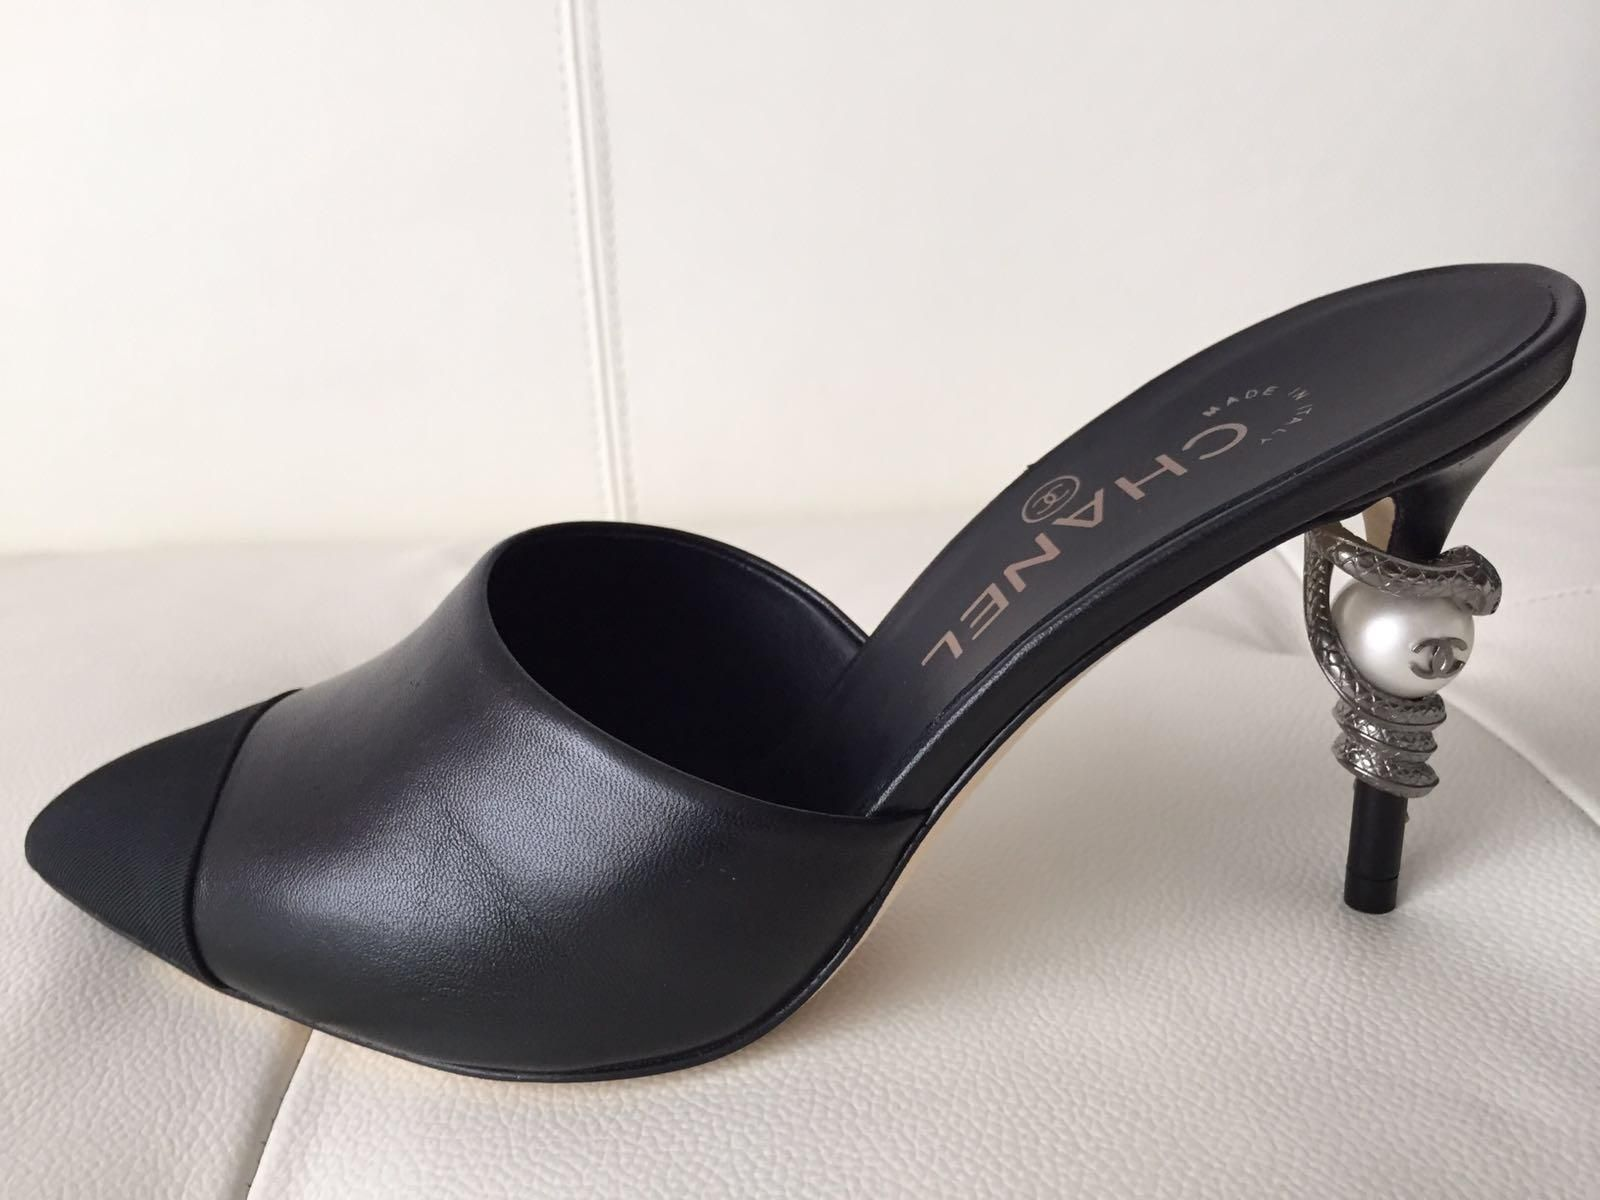 8ad44c78f02b Chanel Runway Leather Mules Heels Pearl Snake 37.5 Black Pumps. Get the  must-have pumps of this season! These Chanel Runway Leather…